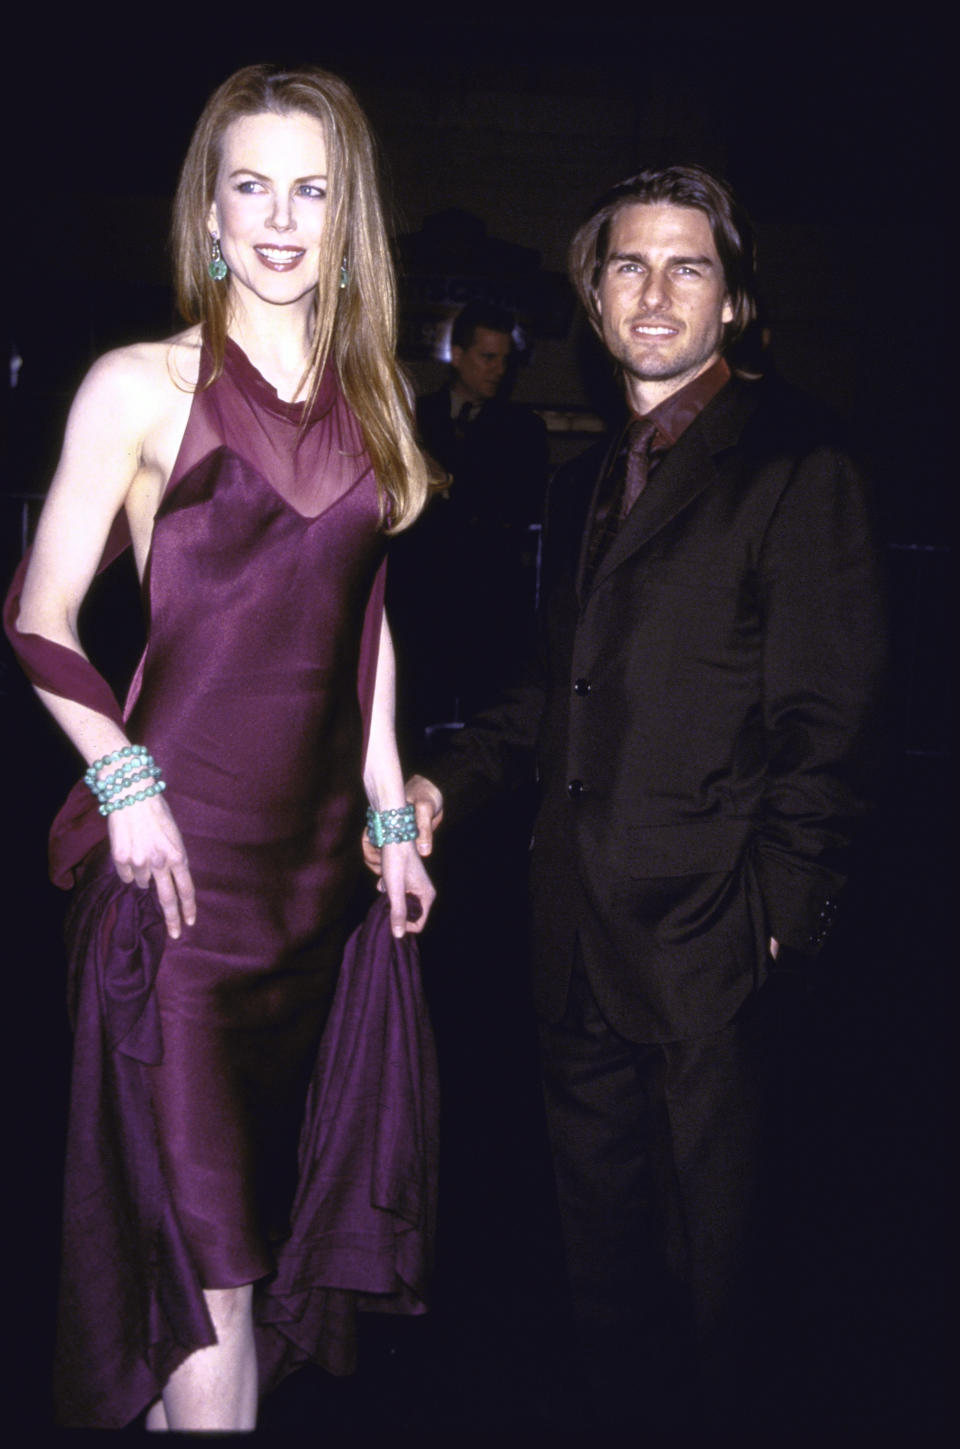 "<p>Cruise and Kidman reigned supreme over Hollywood for most of the '90s. With movie star good looks and blockbuster hits the pair ruled the red carpet and starred in multiple films together, including ""Days of Thunder"" and ""Eyes Wide Shut."" Cruise filed for divorce in 2001 after 11 years of marriage. <em>(Image via Getty Images)</em></p>"